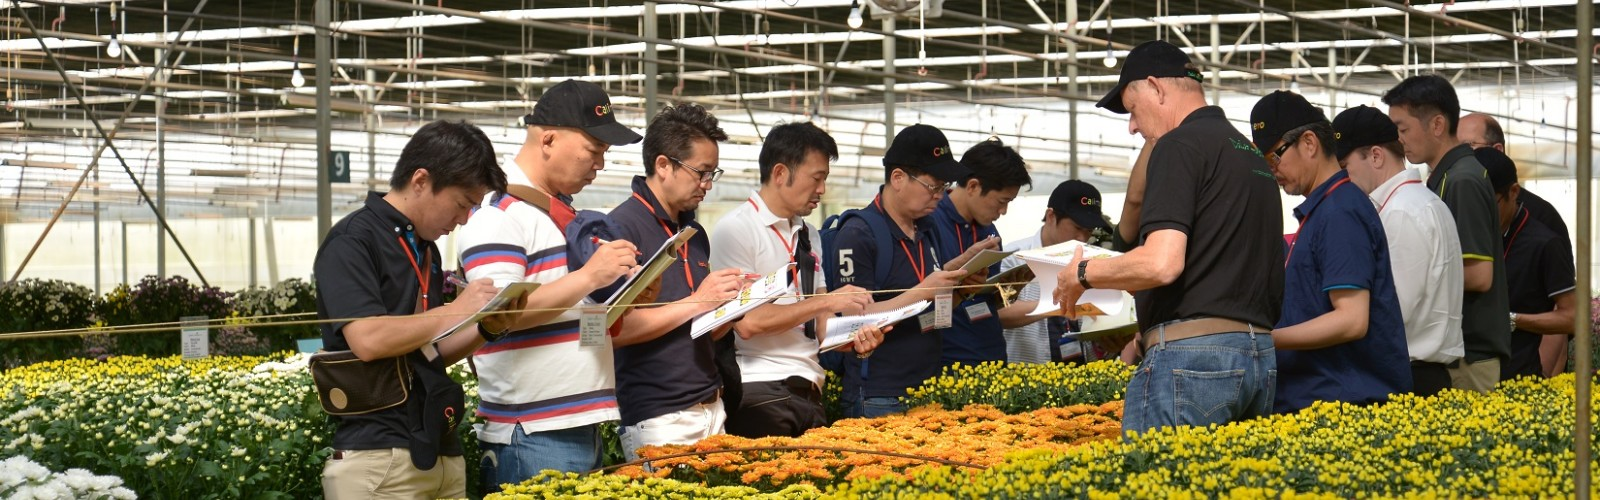 Press Release Dalat Hasfarm Flower Trials 2017 - 3rd Edition